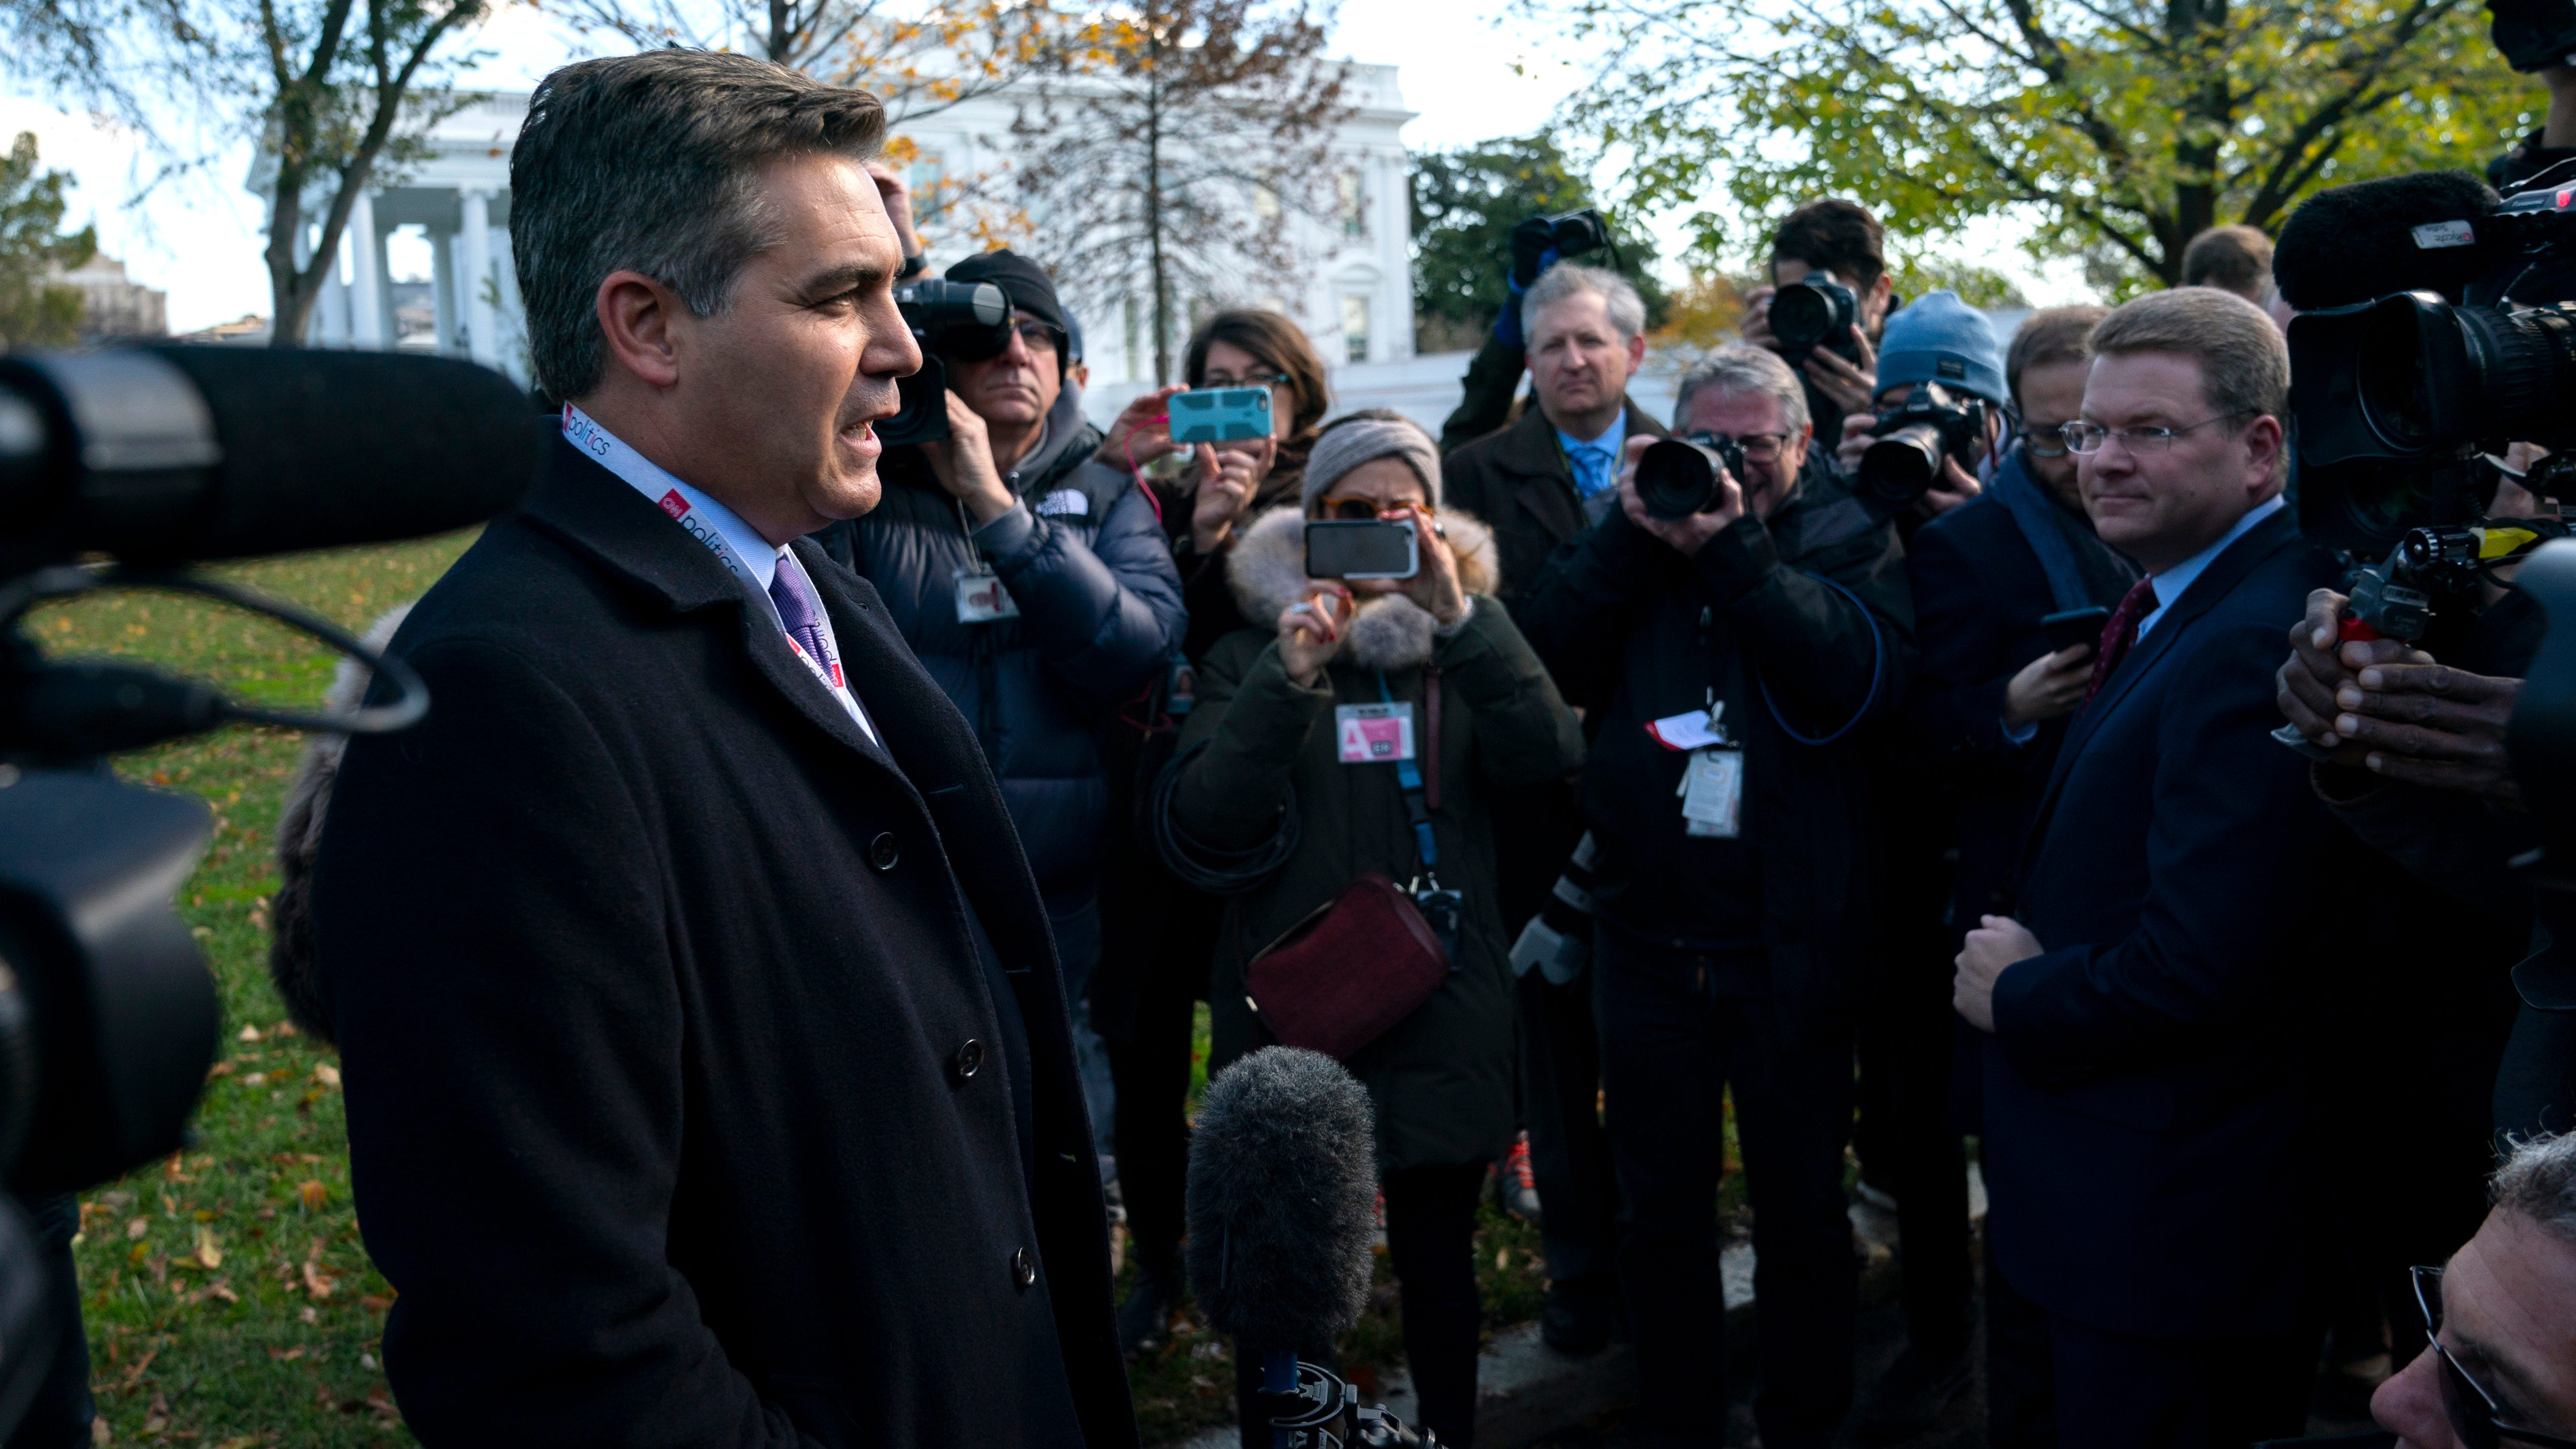 CNN journalist Jim Acosta talks with reporters as he arrives at the White House after having his press pass restored, Nov. 16, 2018, in Washington.